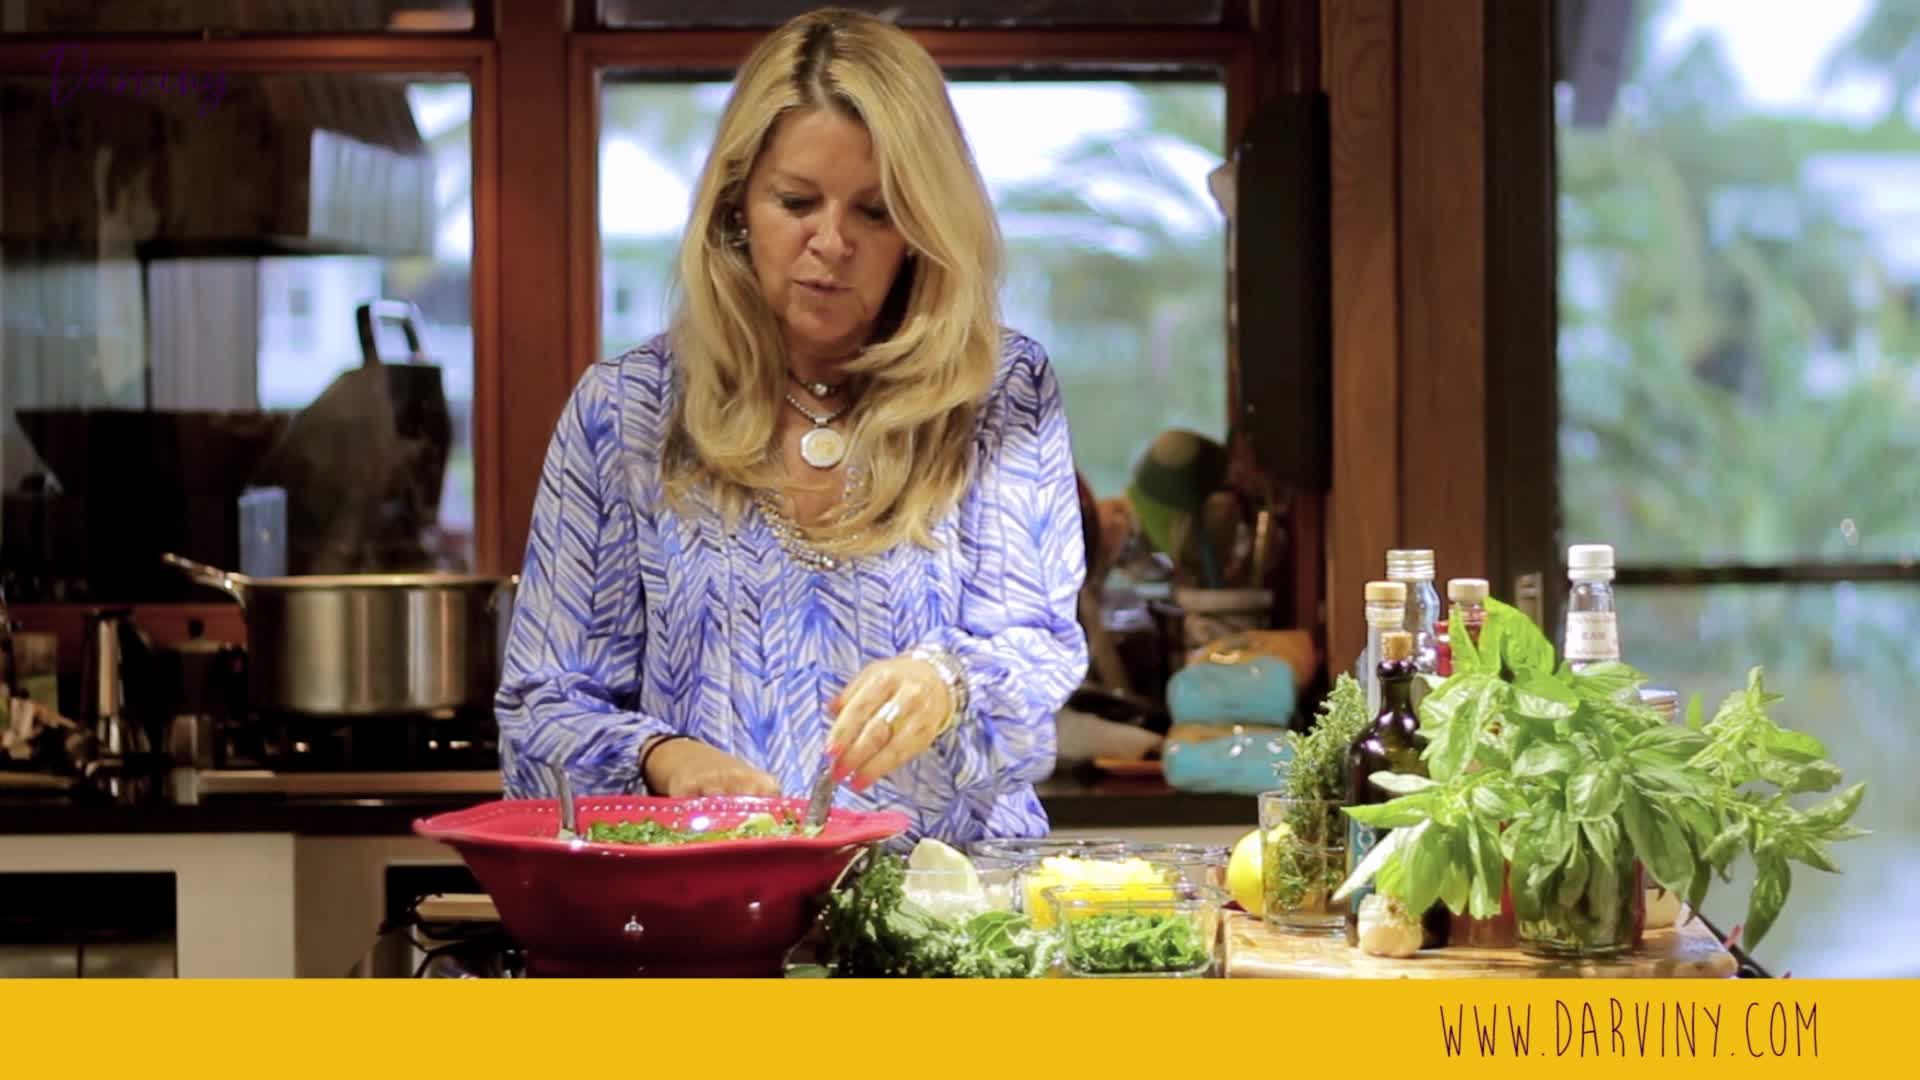 The Love, Darviny Show - A Kale Salad for Everyone - trailer